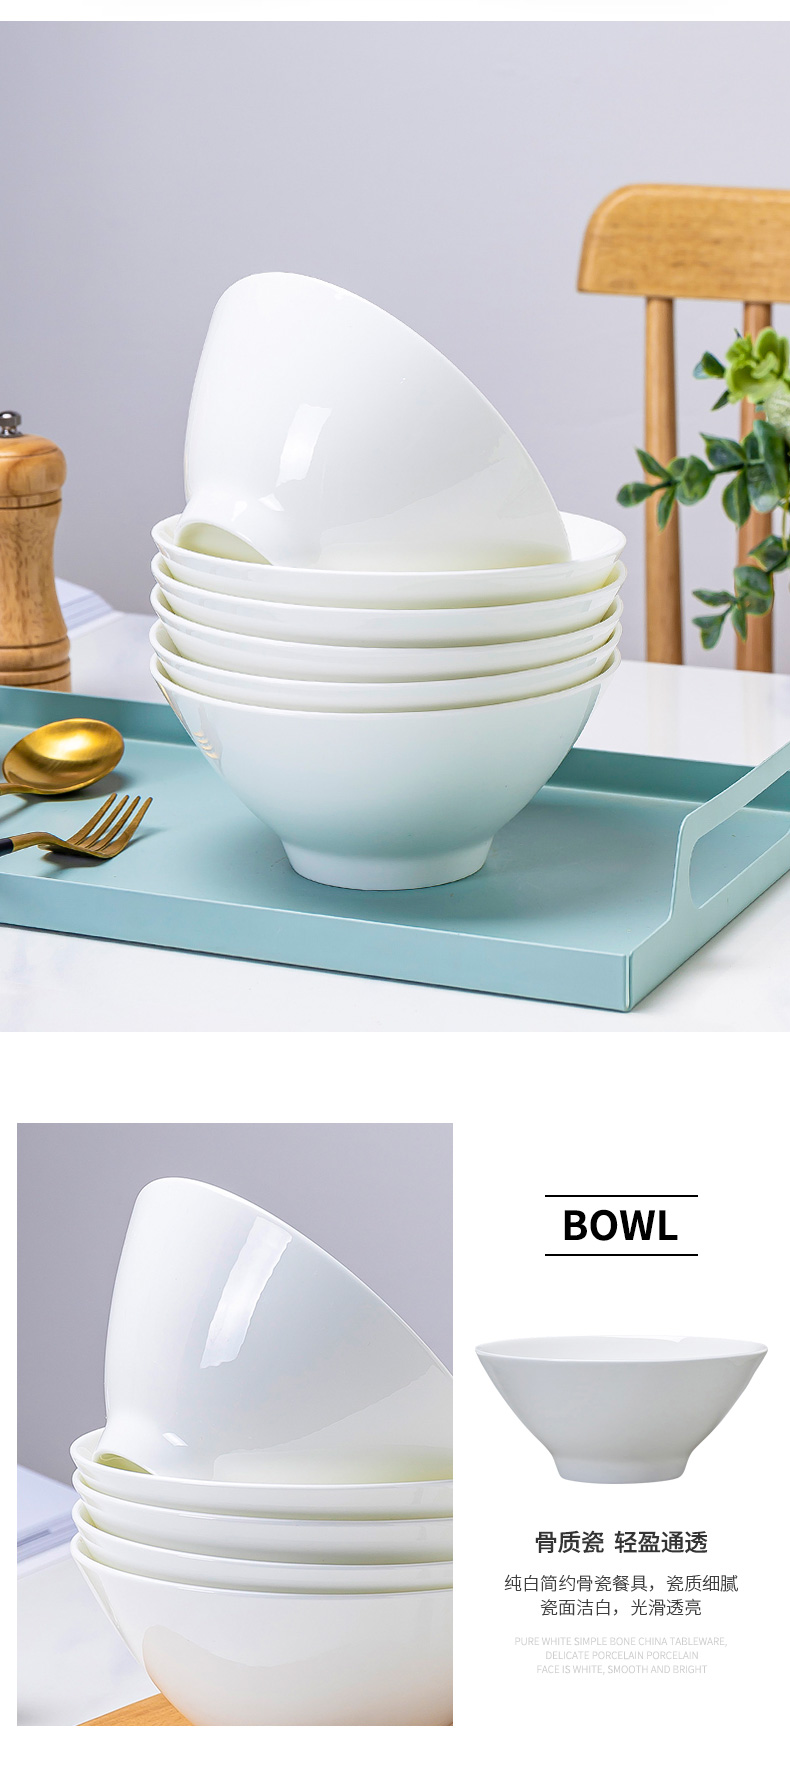 White ipads bowls of jingdezhen tableware suit hat to bowl of 7 inches household rainbow such use 5 inches ceramic bowl